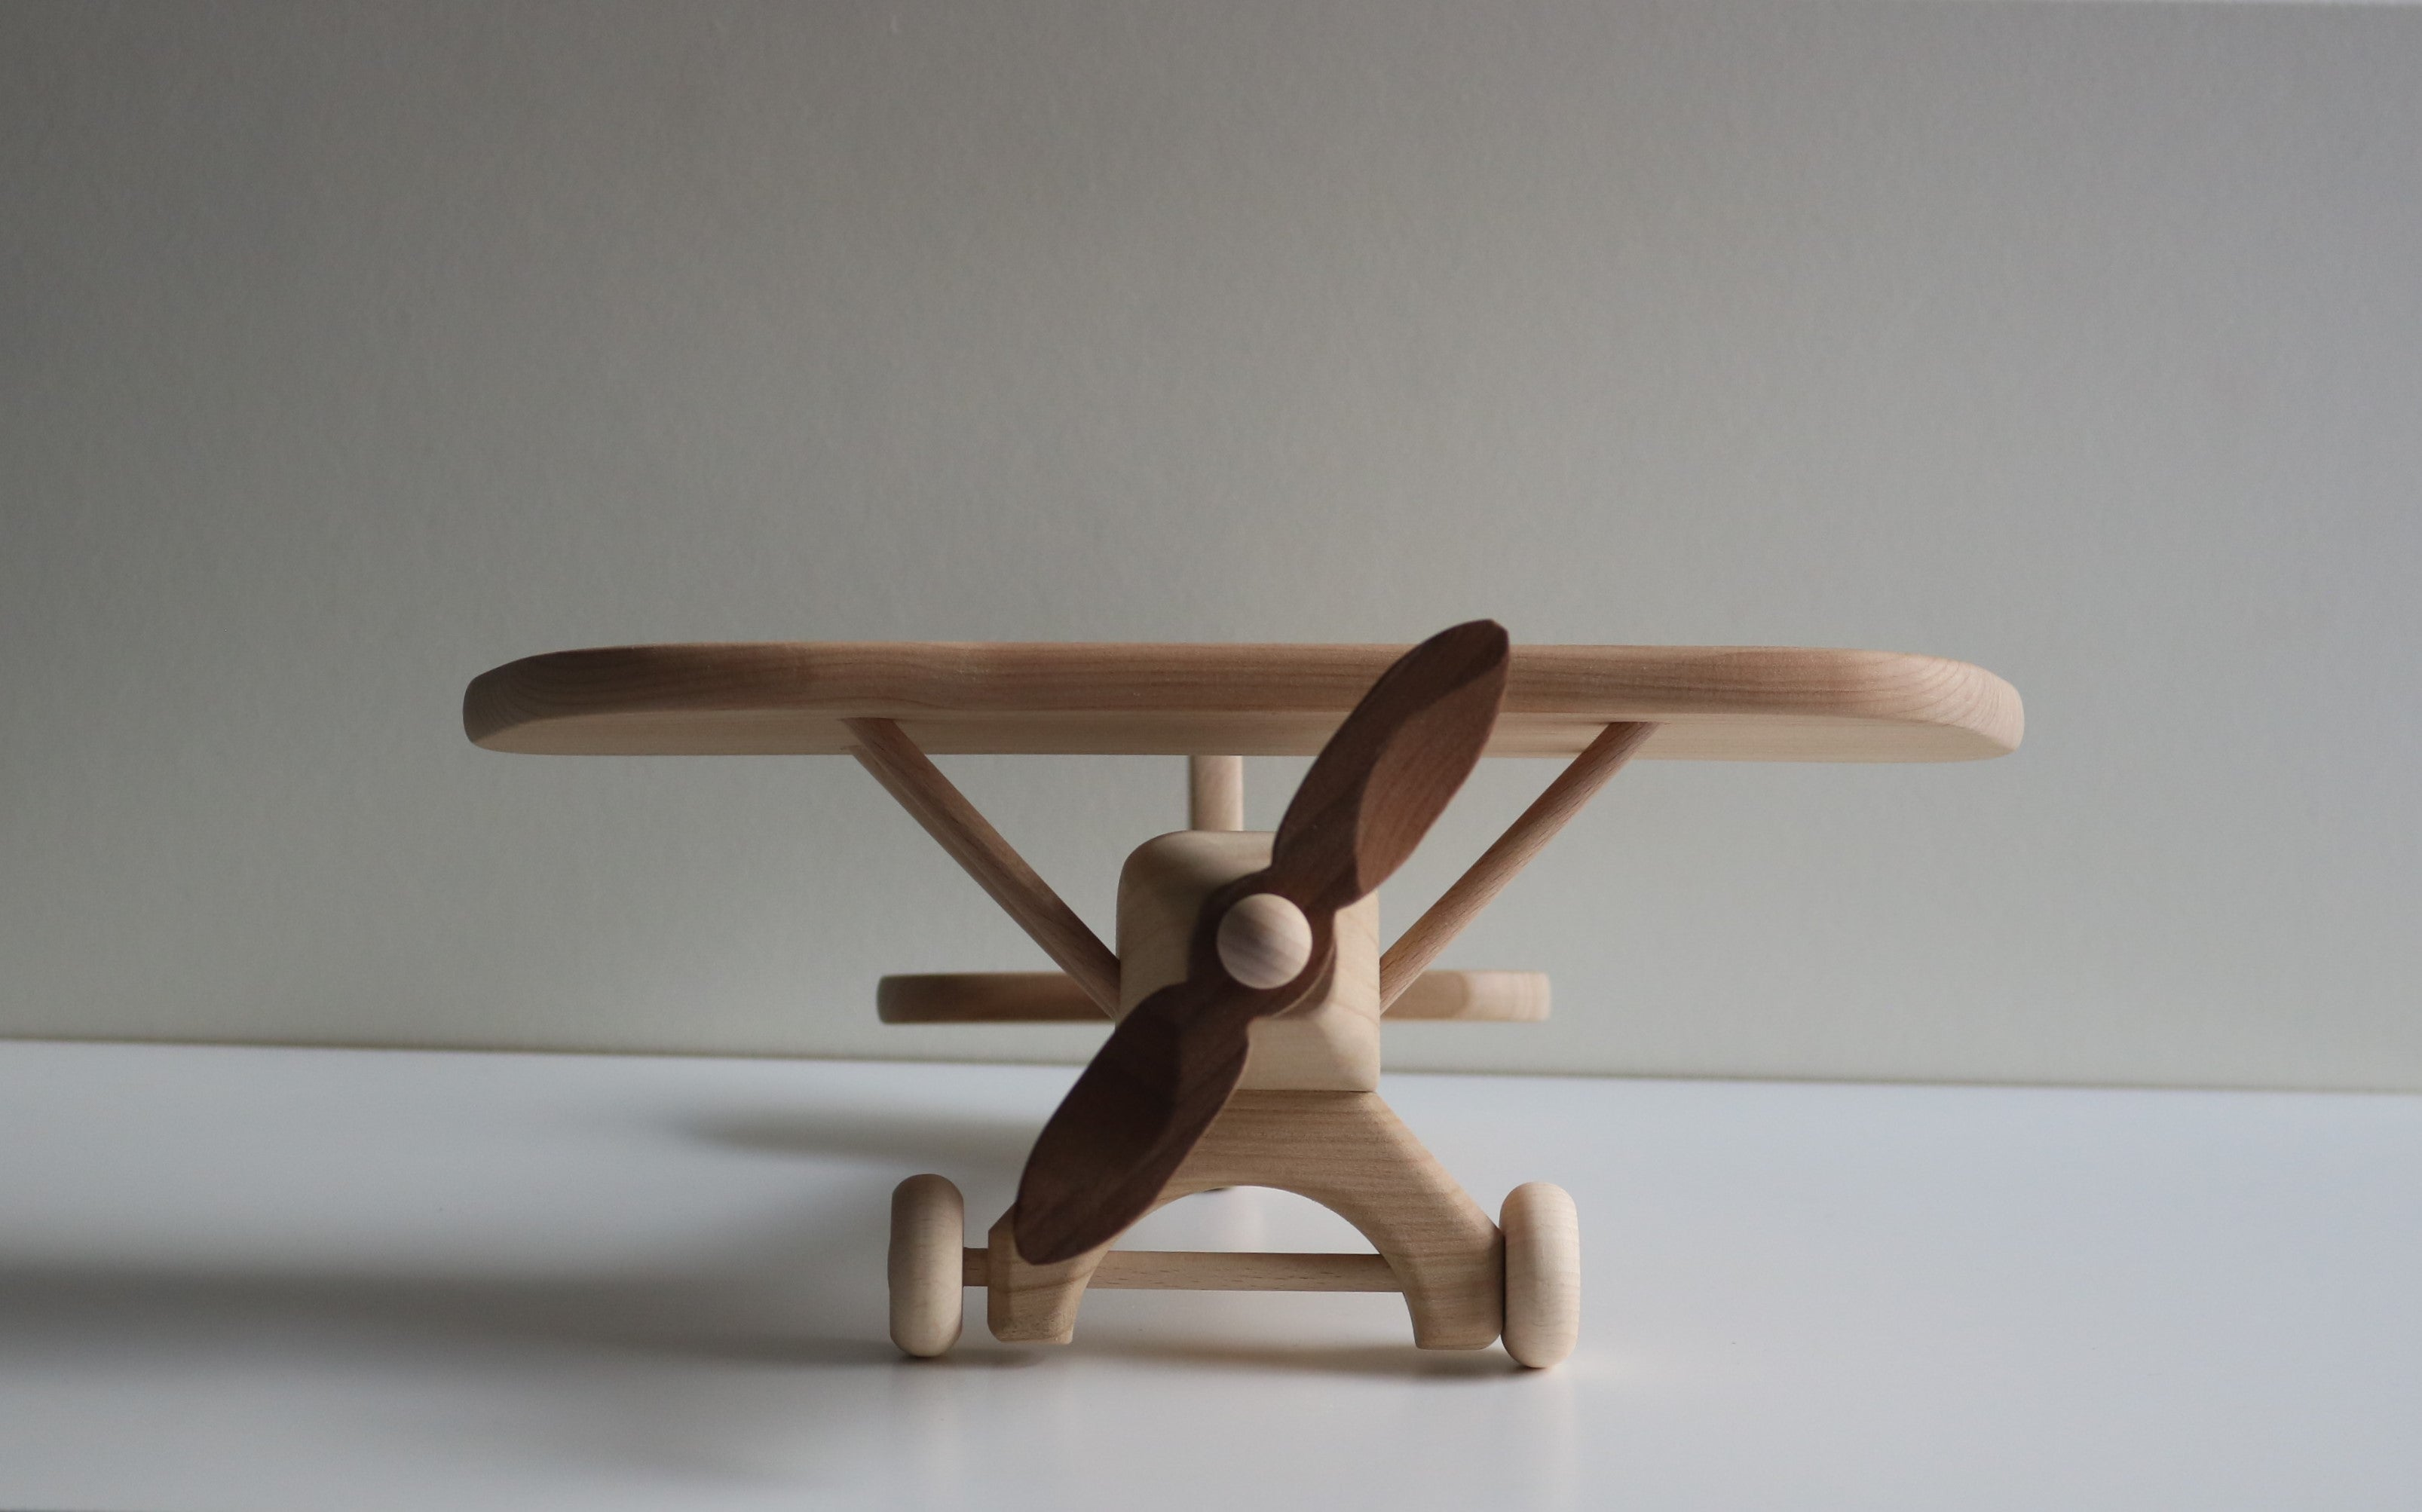 Wooden Airplane with Rotor Turbines - Moo Like a Monkey